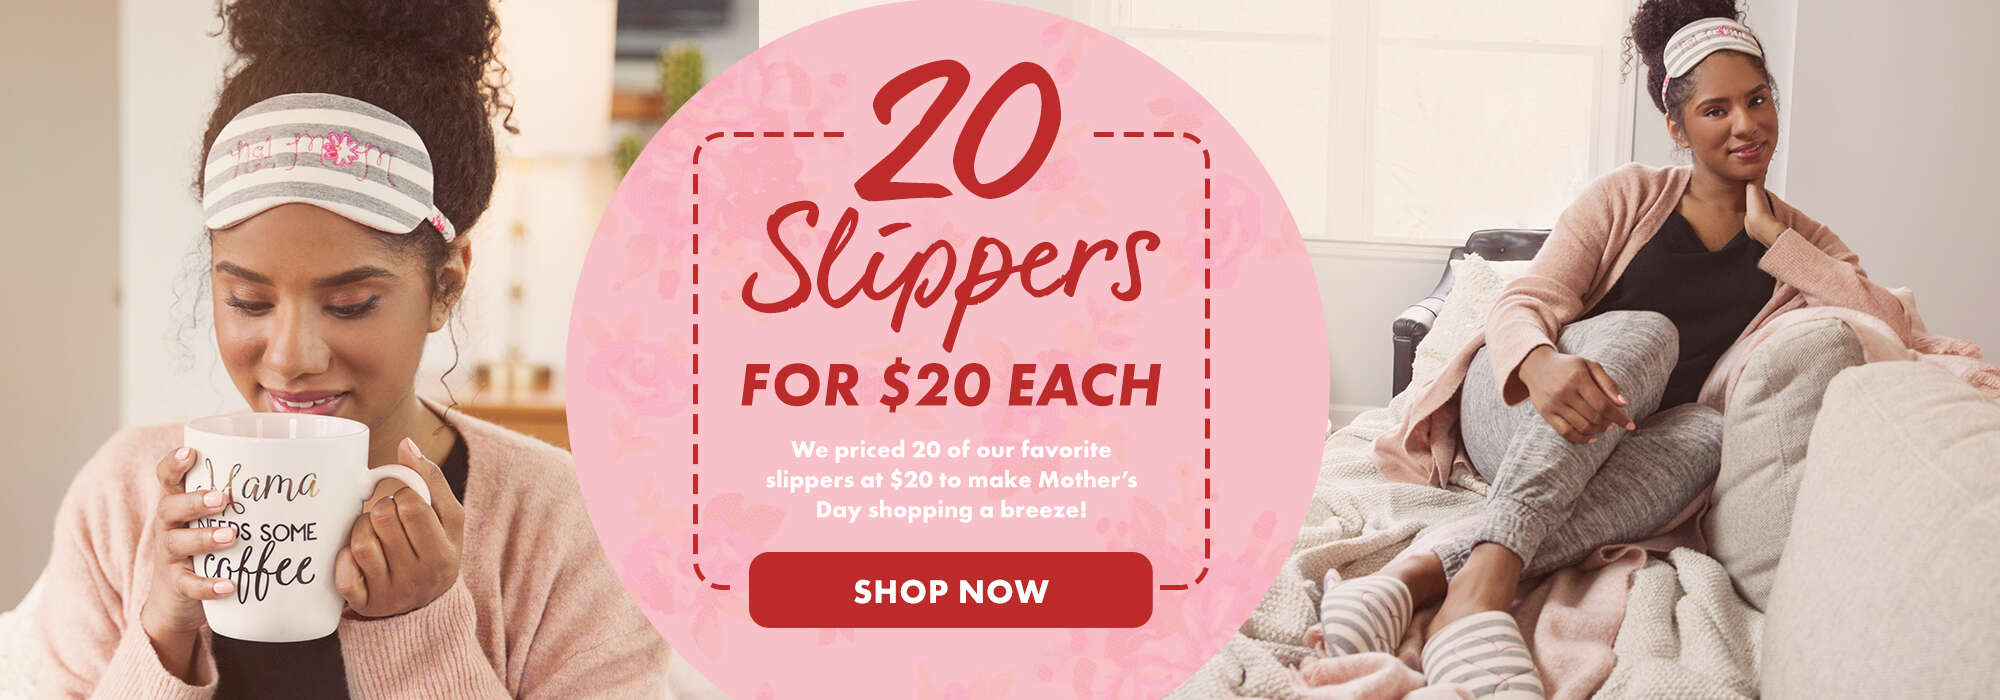 20 Slippers For $20 Each. We priced 20 of our favorite slippers at $20 to make Mother's Day shopping a breeze!